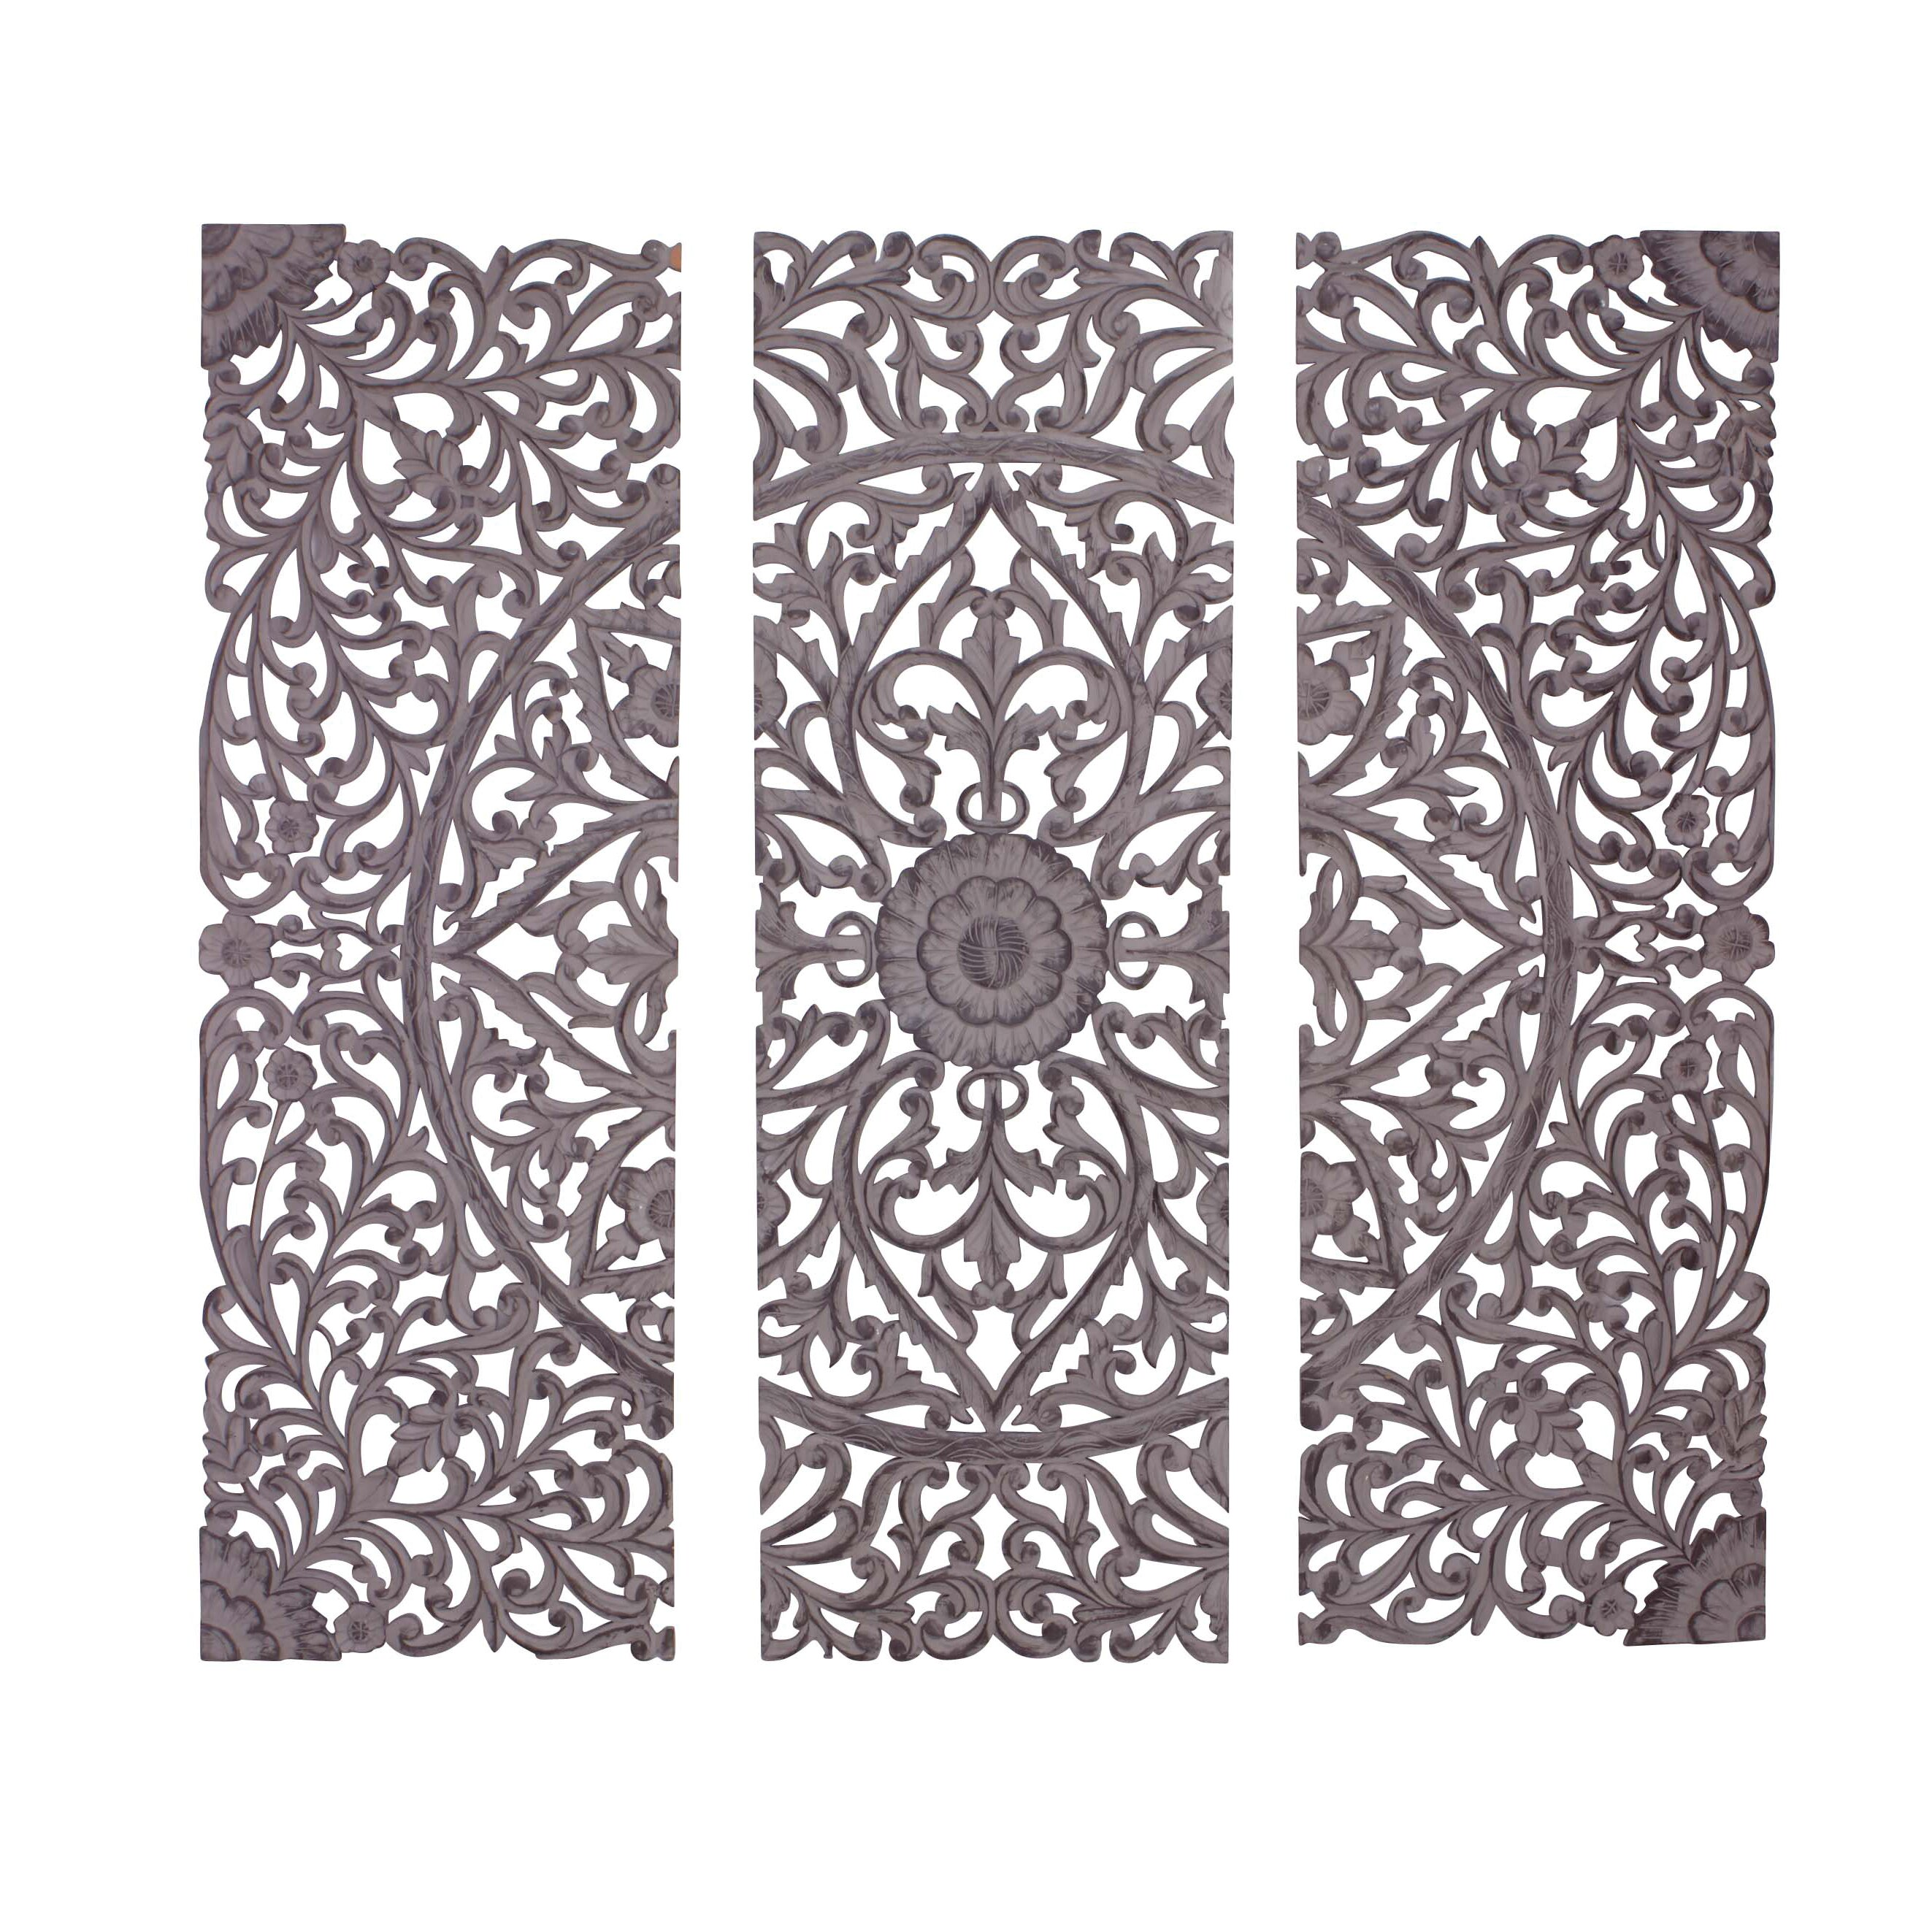 Woodland Imports Panel Wall D�cor Reviews: Woodland Imports 3 Piece The Must Have Wood Carved Panel